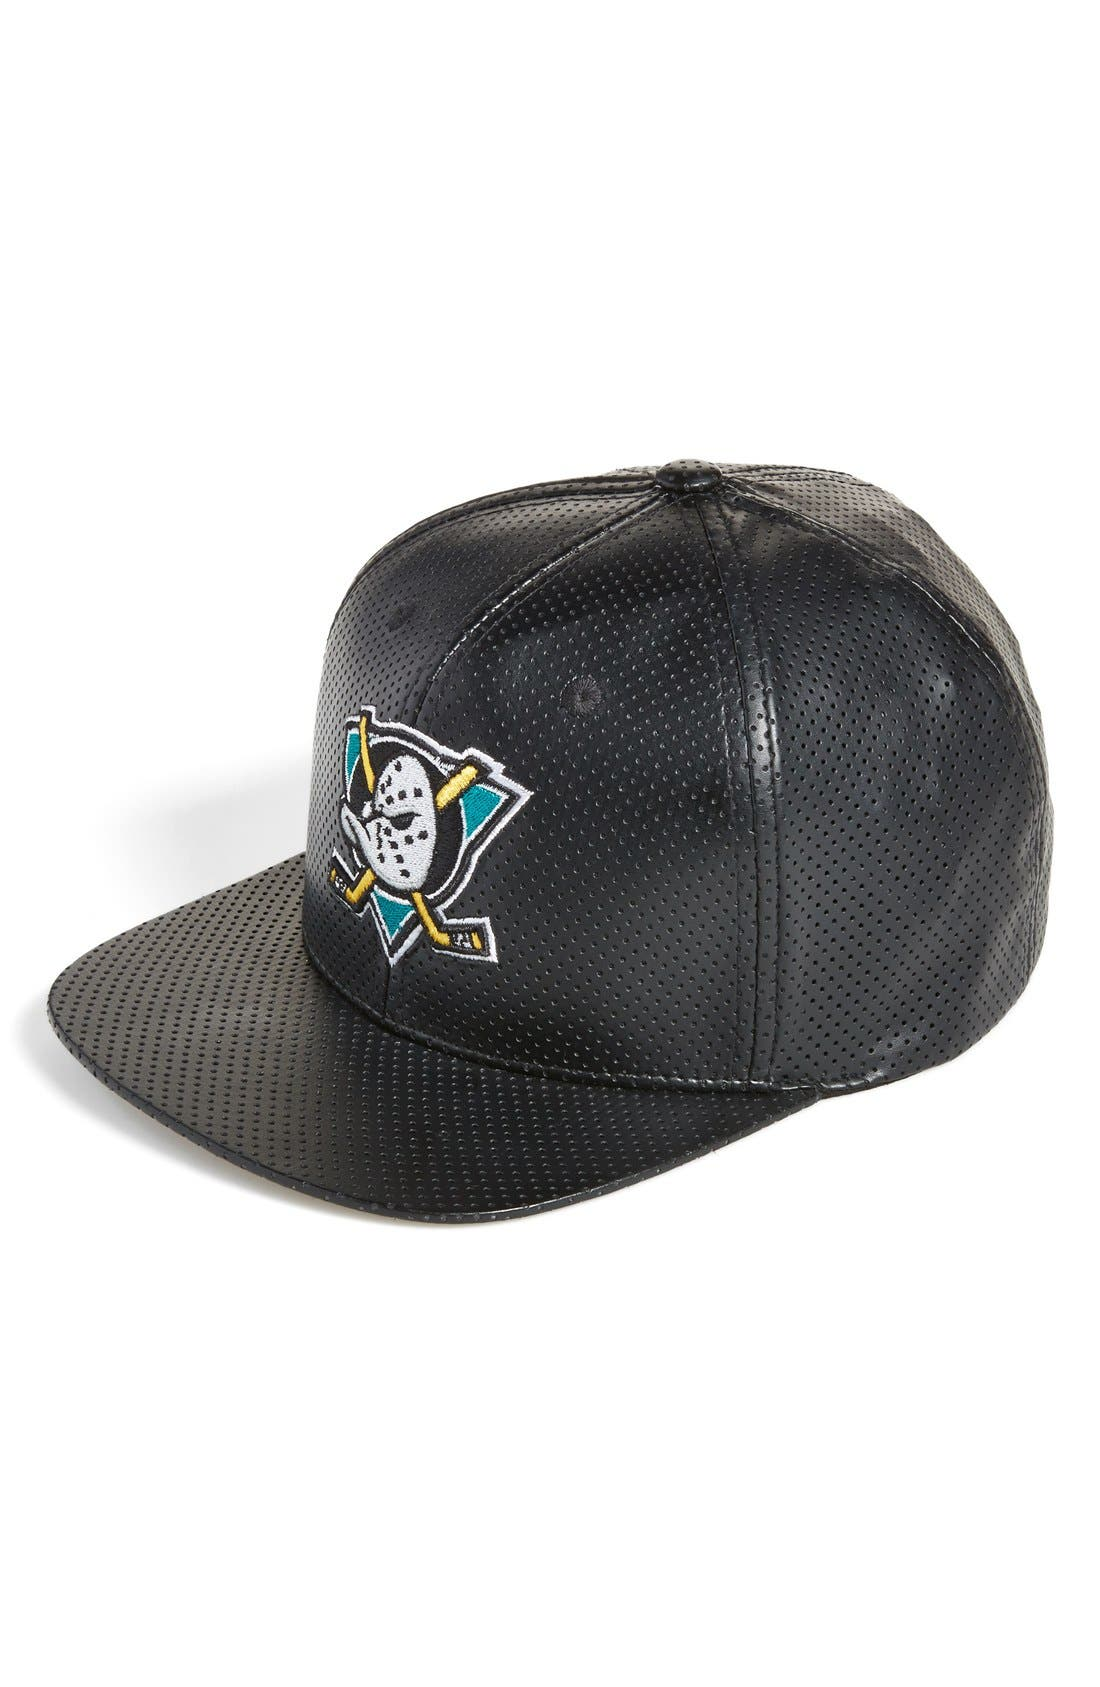 Main Image - American Needle 'Anaheim Mighty Ducks' Perforated Faux Leather Snapback Cap